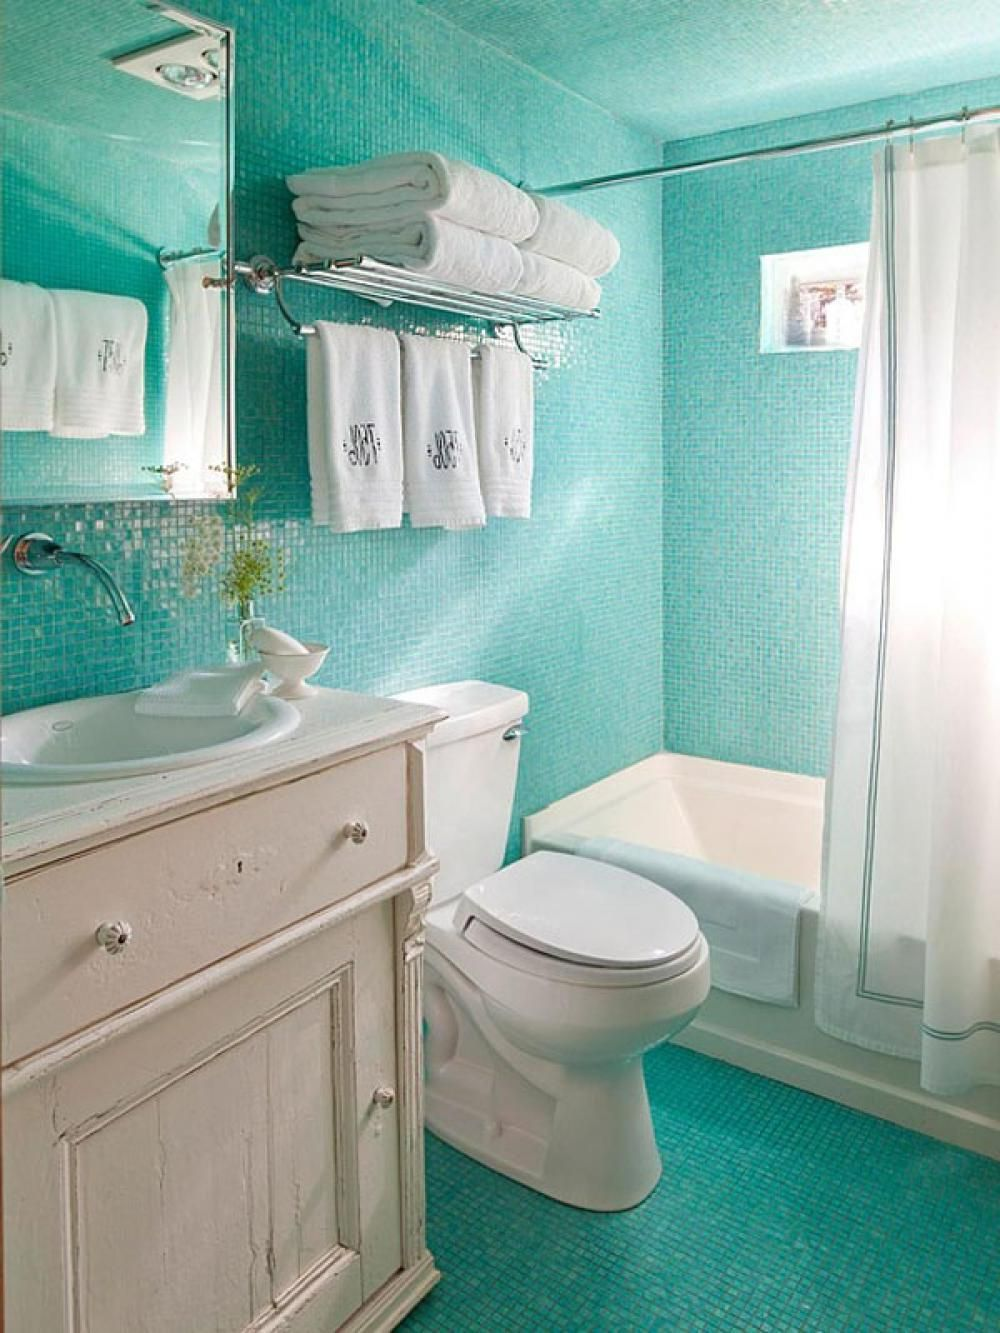 Chic turquoise mosaic tiles ocean inspired bathroom with white vintage bathroom vanity and built Bathroom designs with separate tub and shower